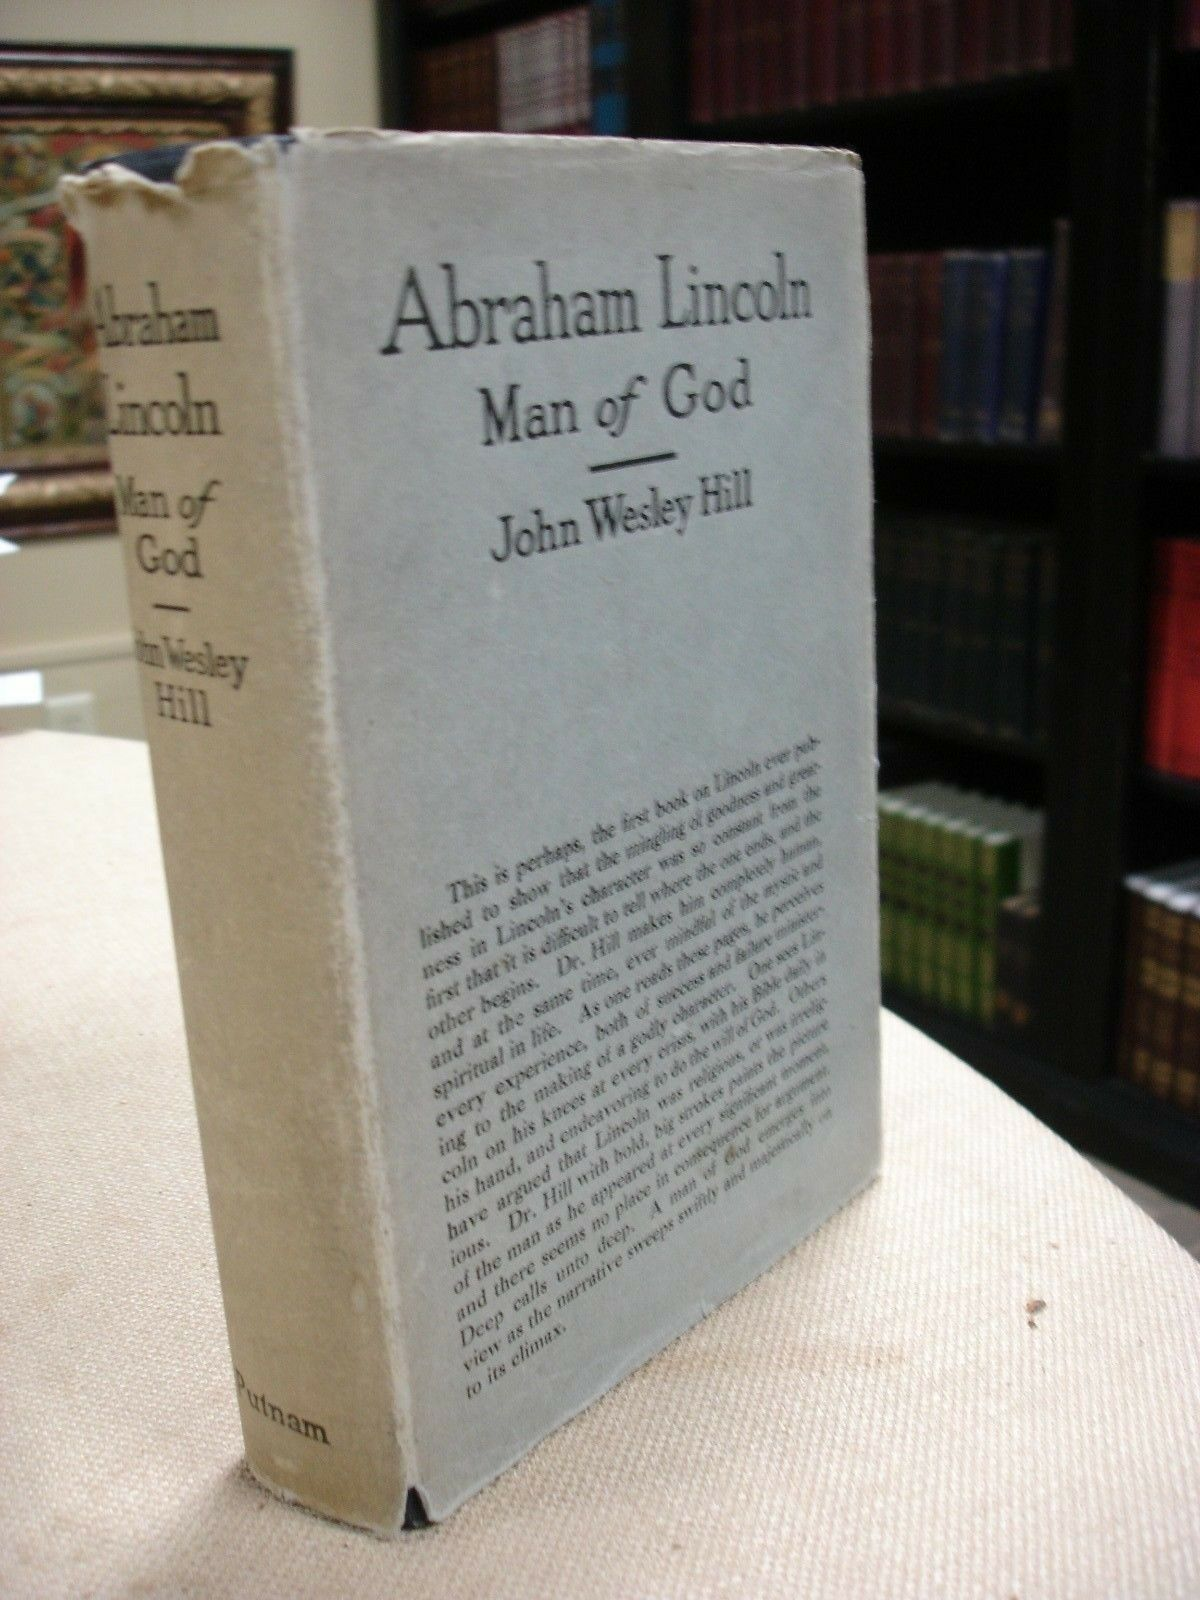 Abraham Lincoln Man of God written and signed by John Wesley Hill